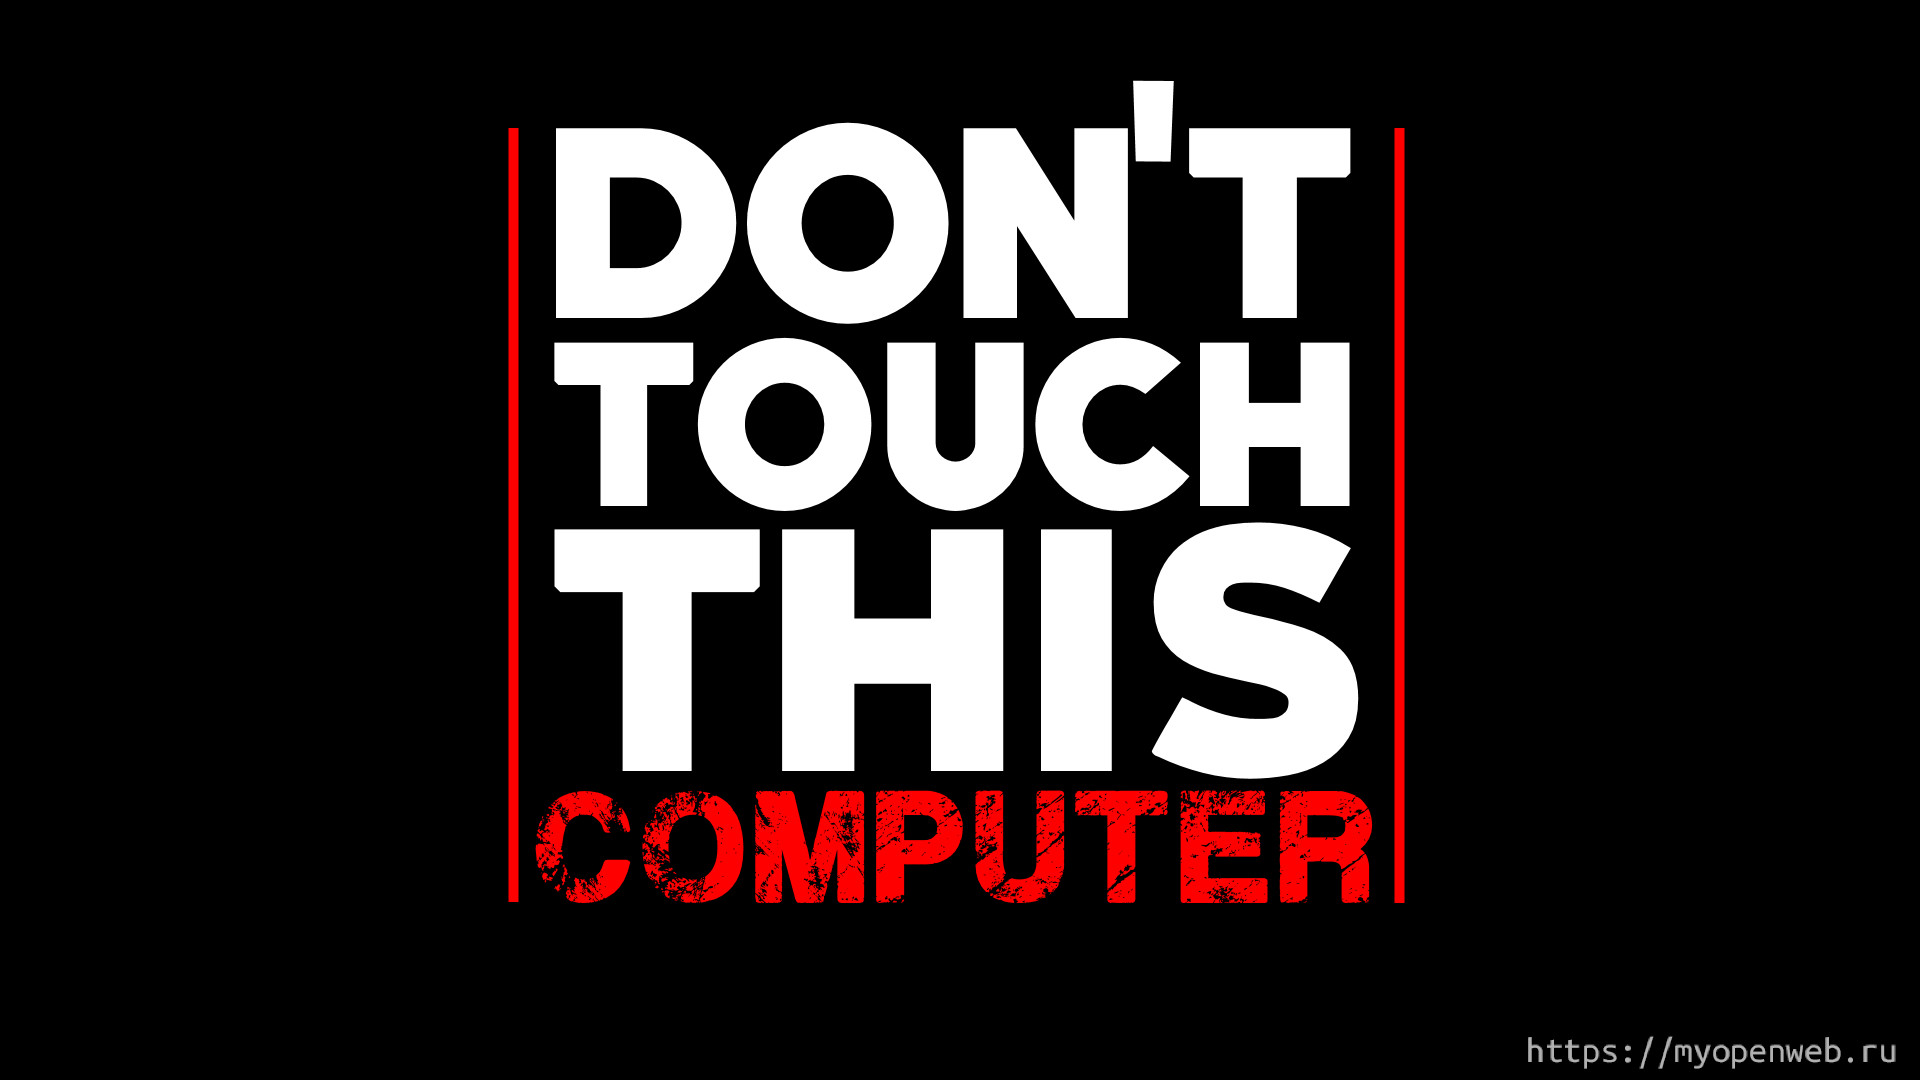 Dont touch wallpaper 86 images - Don t touch my ipad wallpaper ...